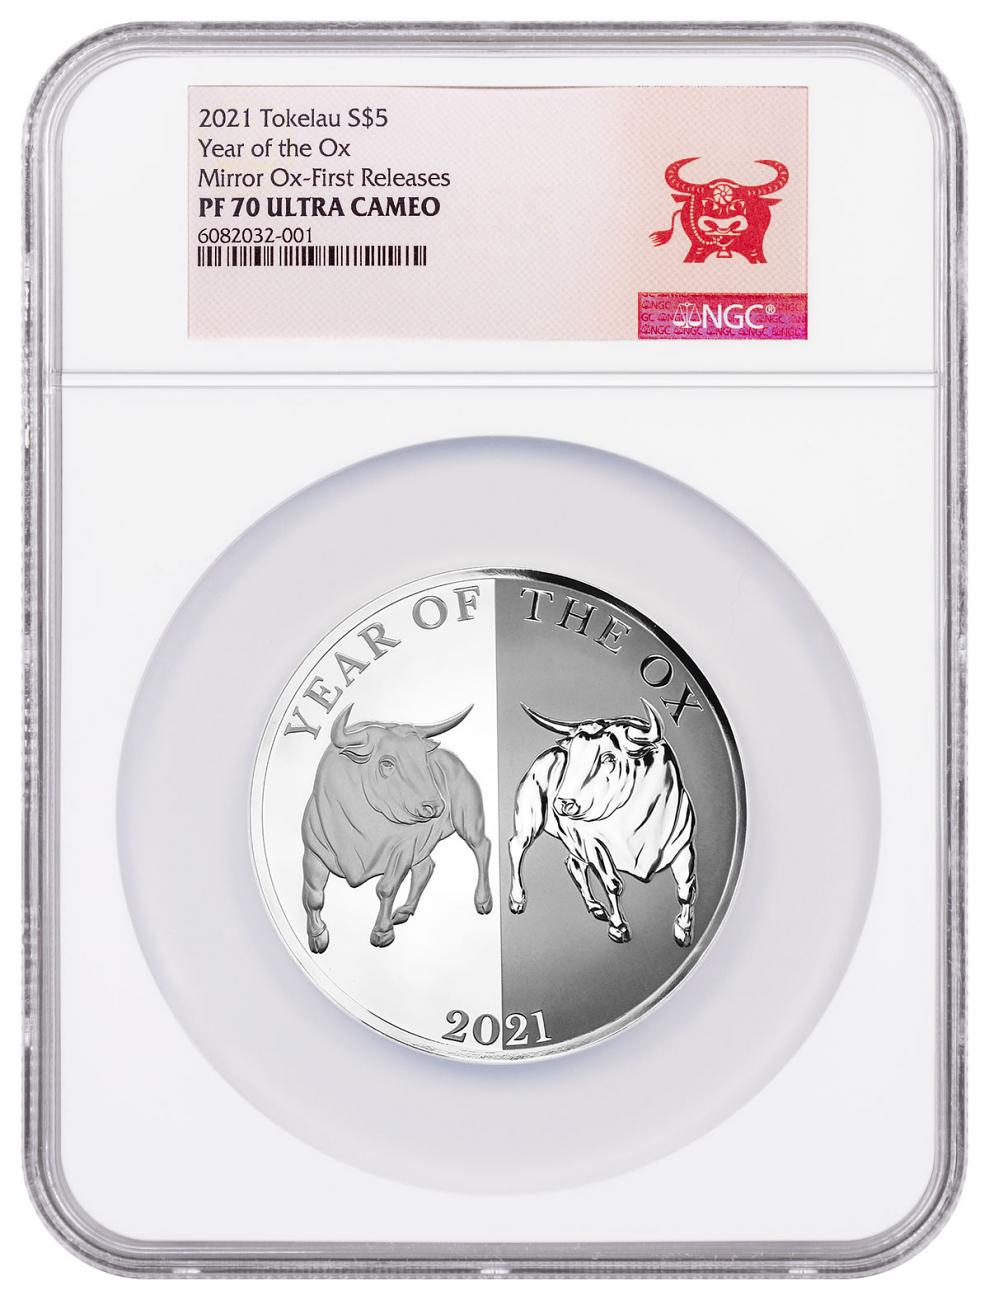 2021 Tokelau 1 oz Silver Lunar Year of the Ox Mirror Proof $5 Coin NGC PF70 UC FR COA Year of the Ox Label